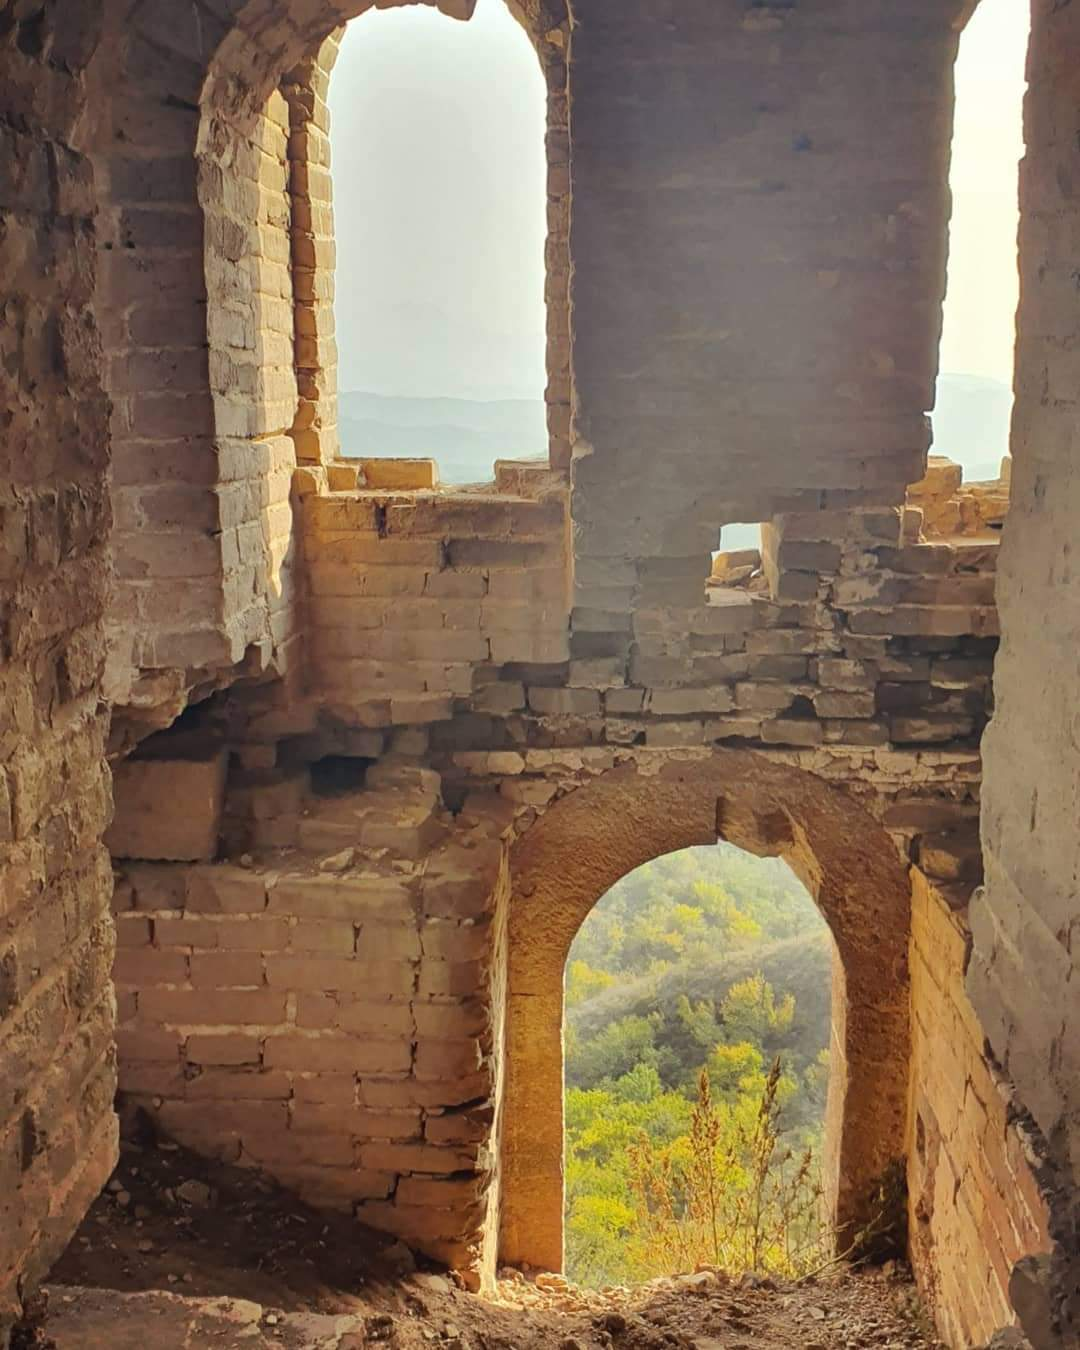 Ruins of the Great Wall of China. Alexia's story